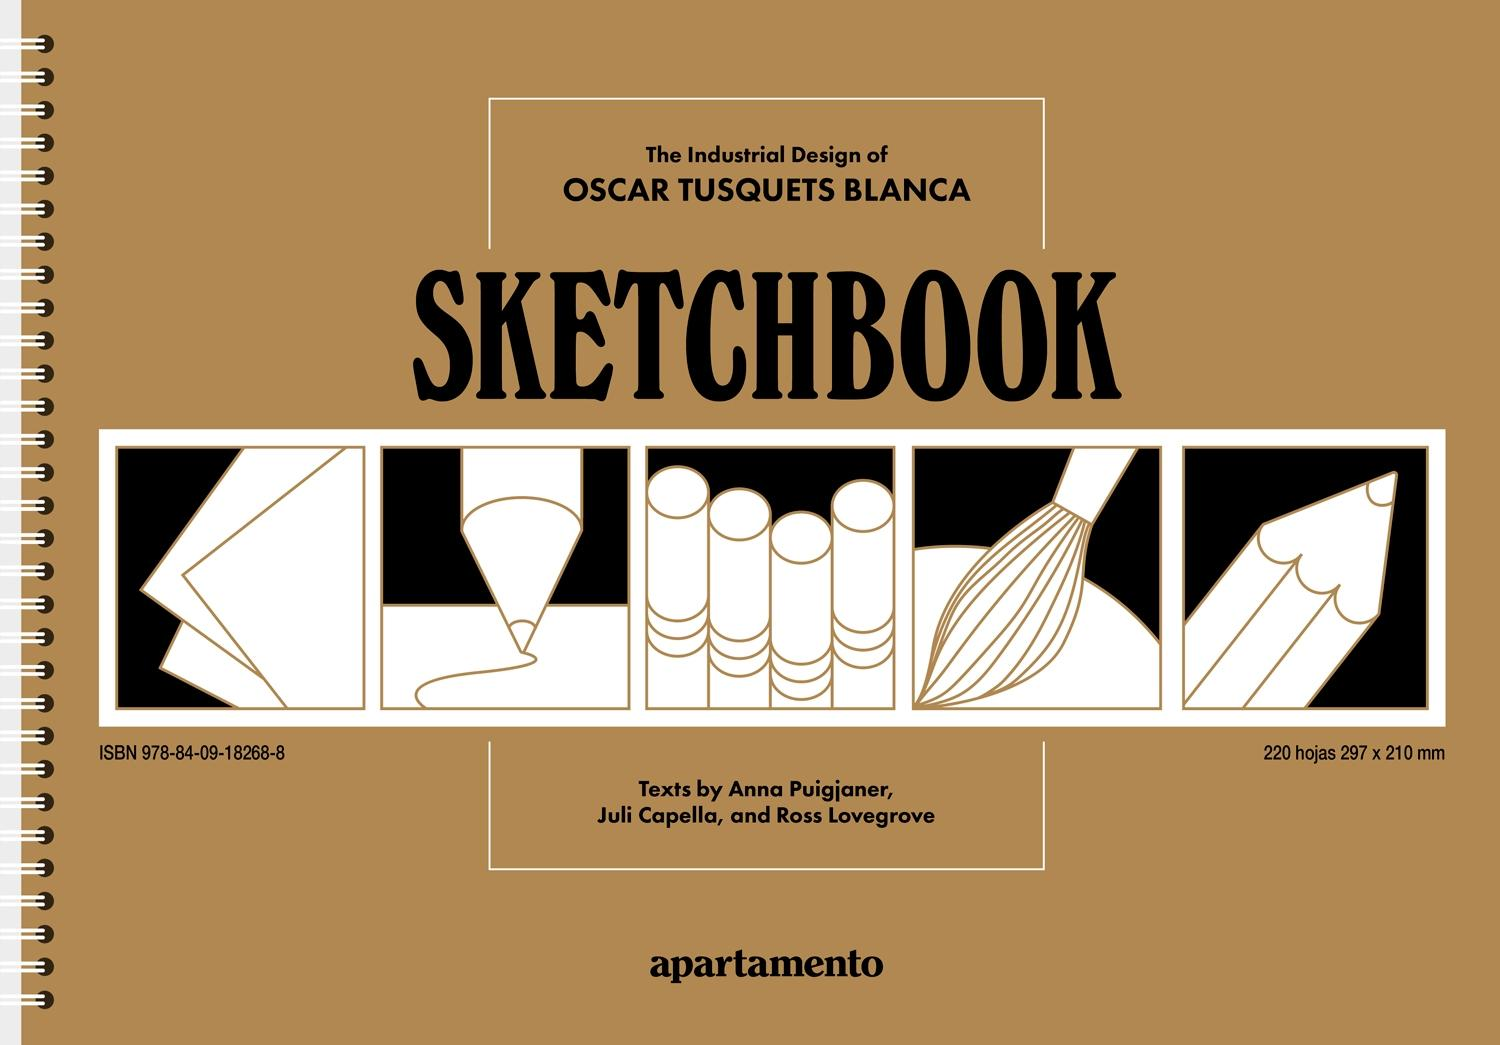 SKETCHBOOK: THE INDUSTRIAL DESIGN OF OSCAR TUSQUETS BLANCA